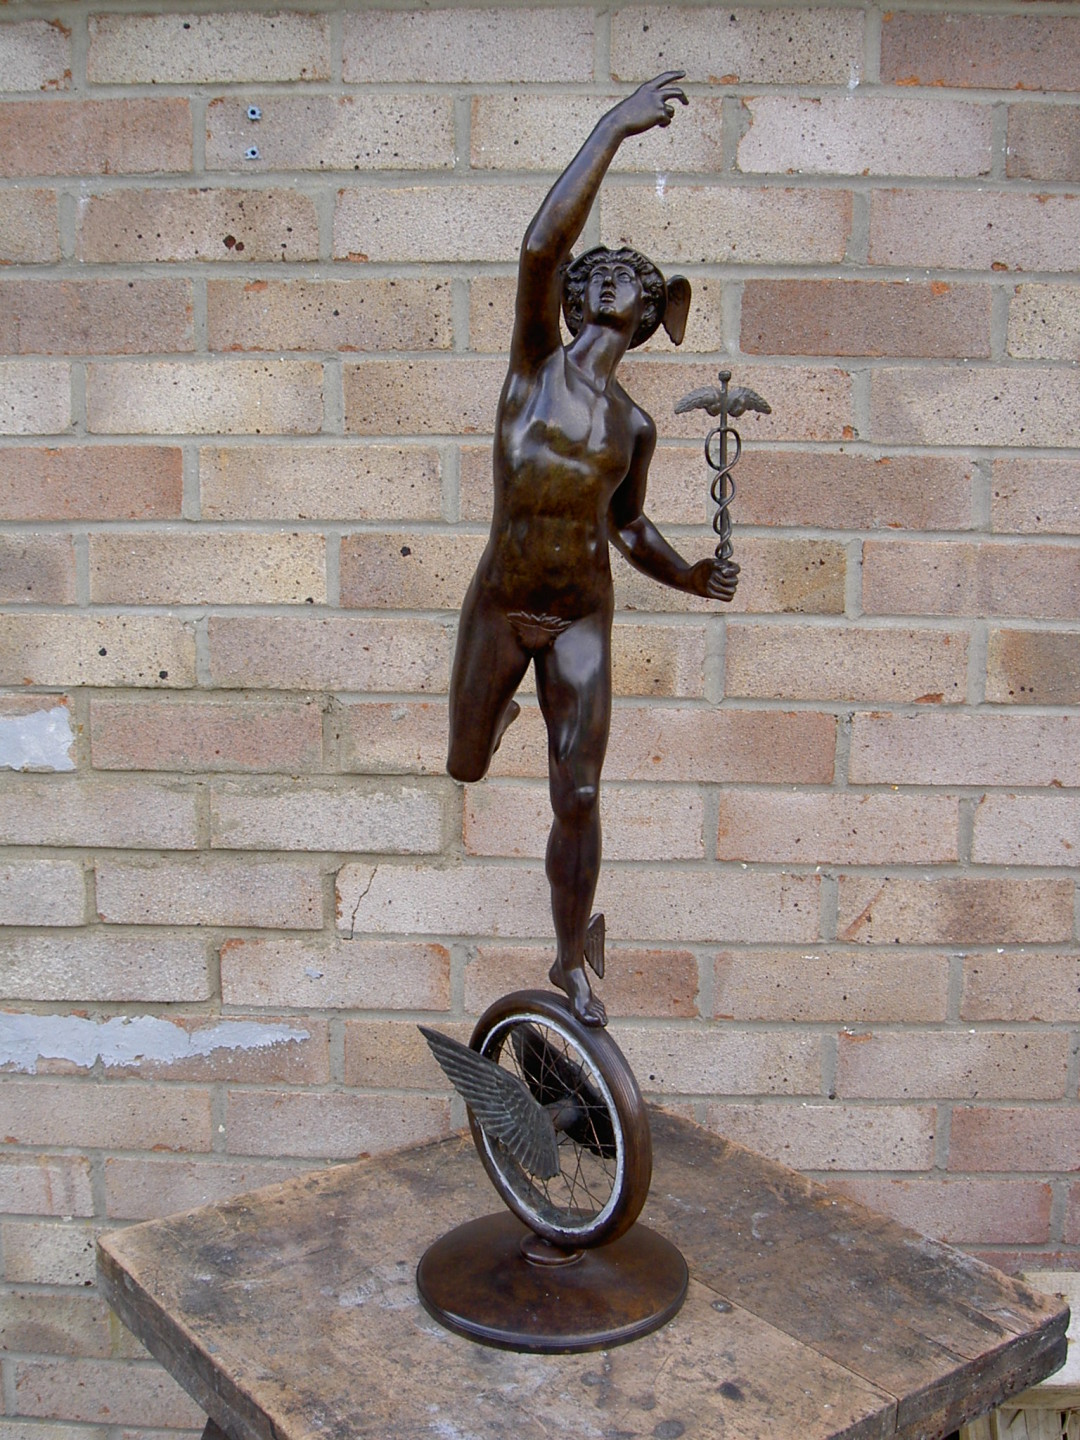 Mercury -Isle of Man TT award – finished bronze sculpture